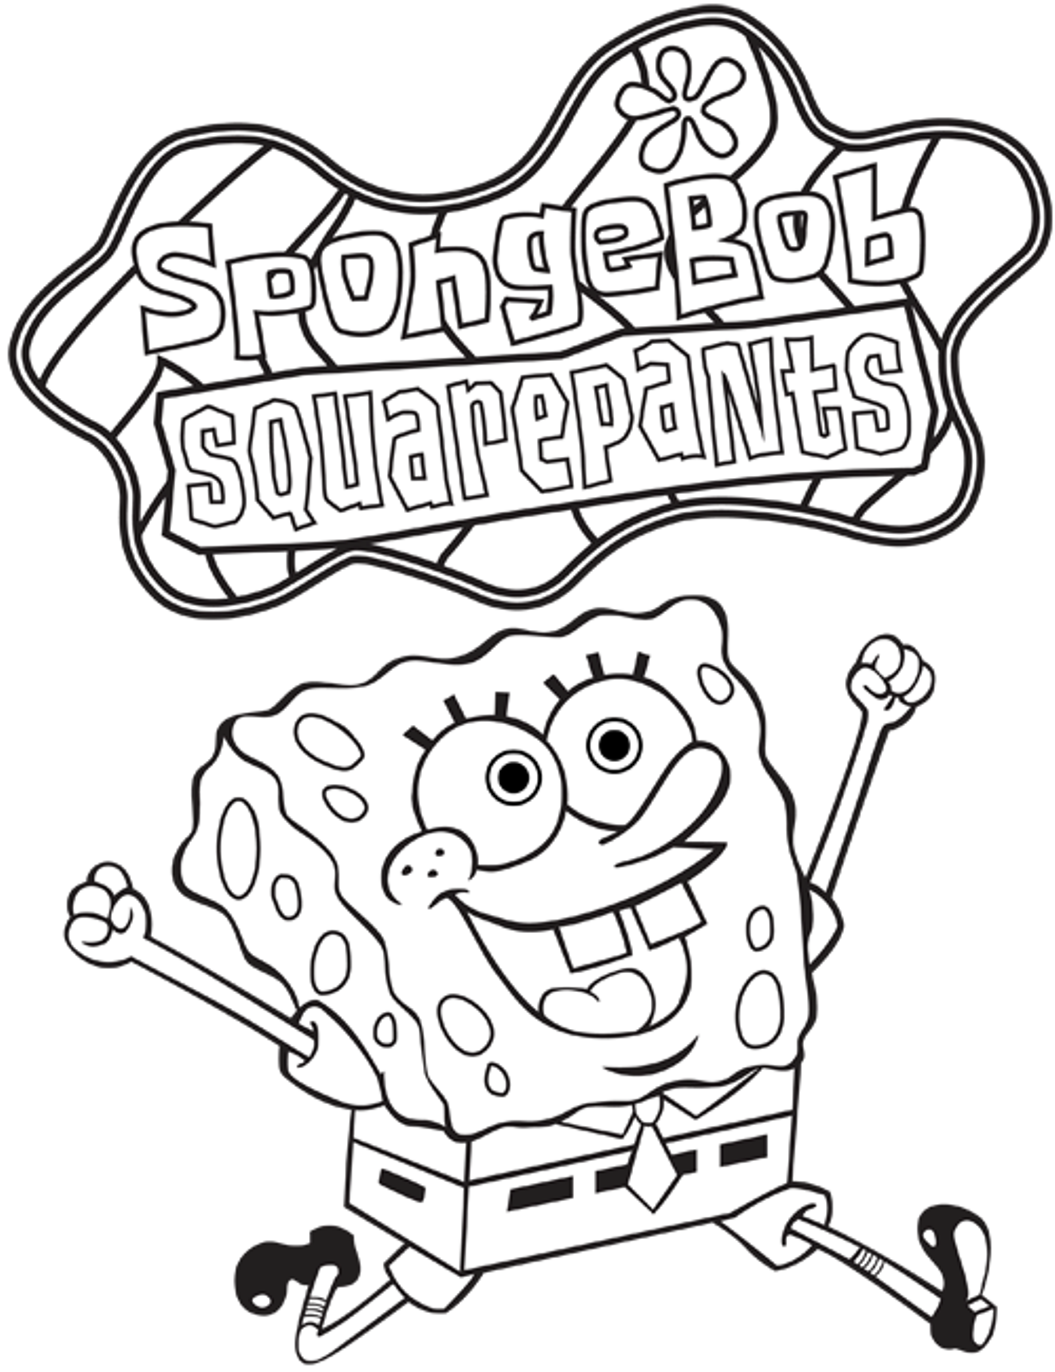 nickelodeon coloring pages - photo#20